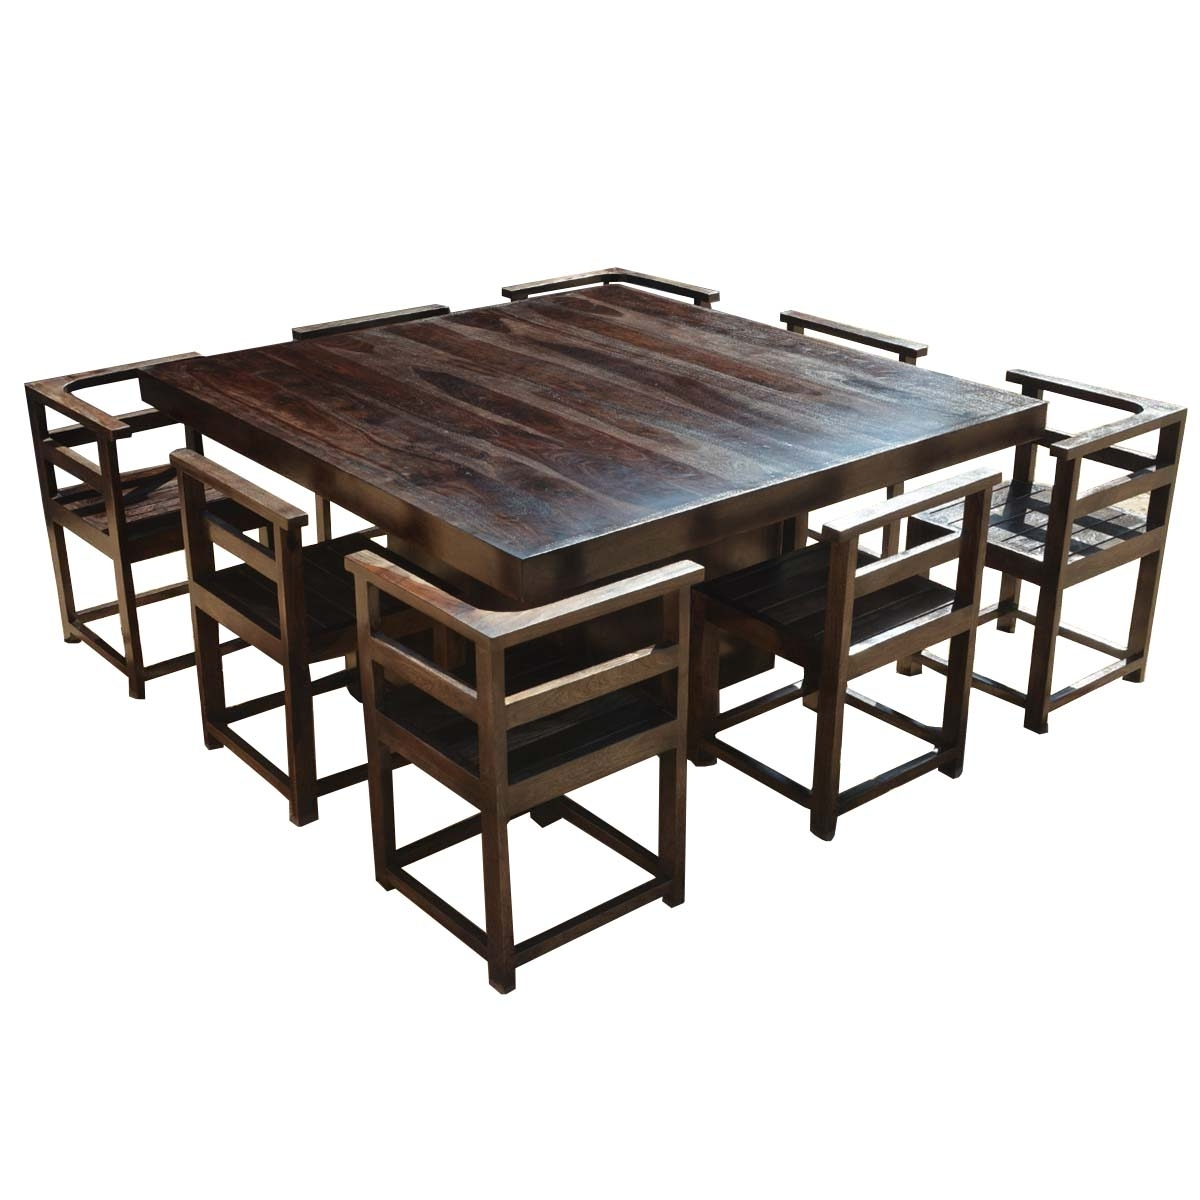 "Modern Rustic Solid Wood 64"" Square Pedestal Dining Table & 8 Chairs With Well Known Dining Tables And 8 Chairs (View 15 of 25)"